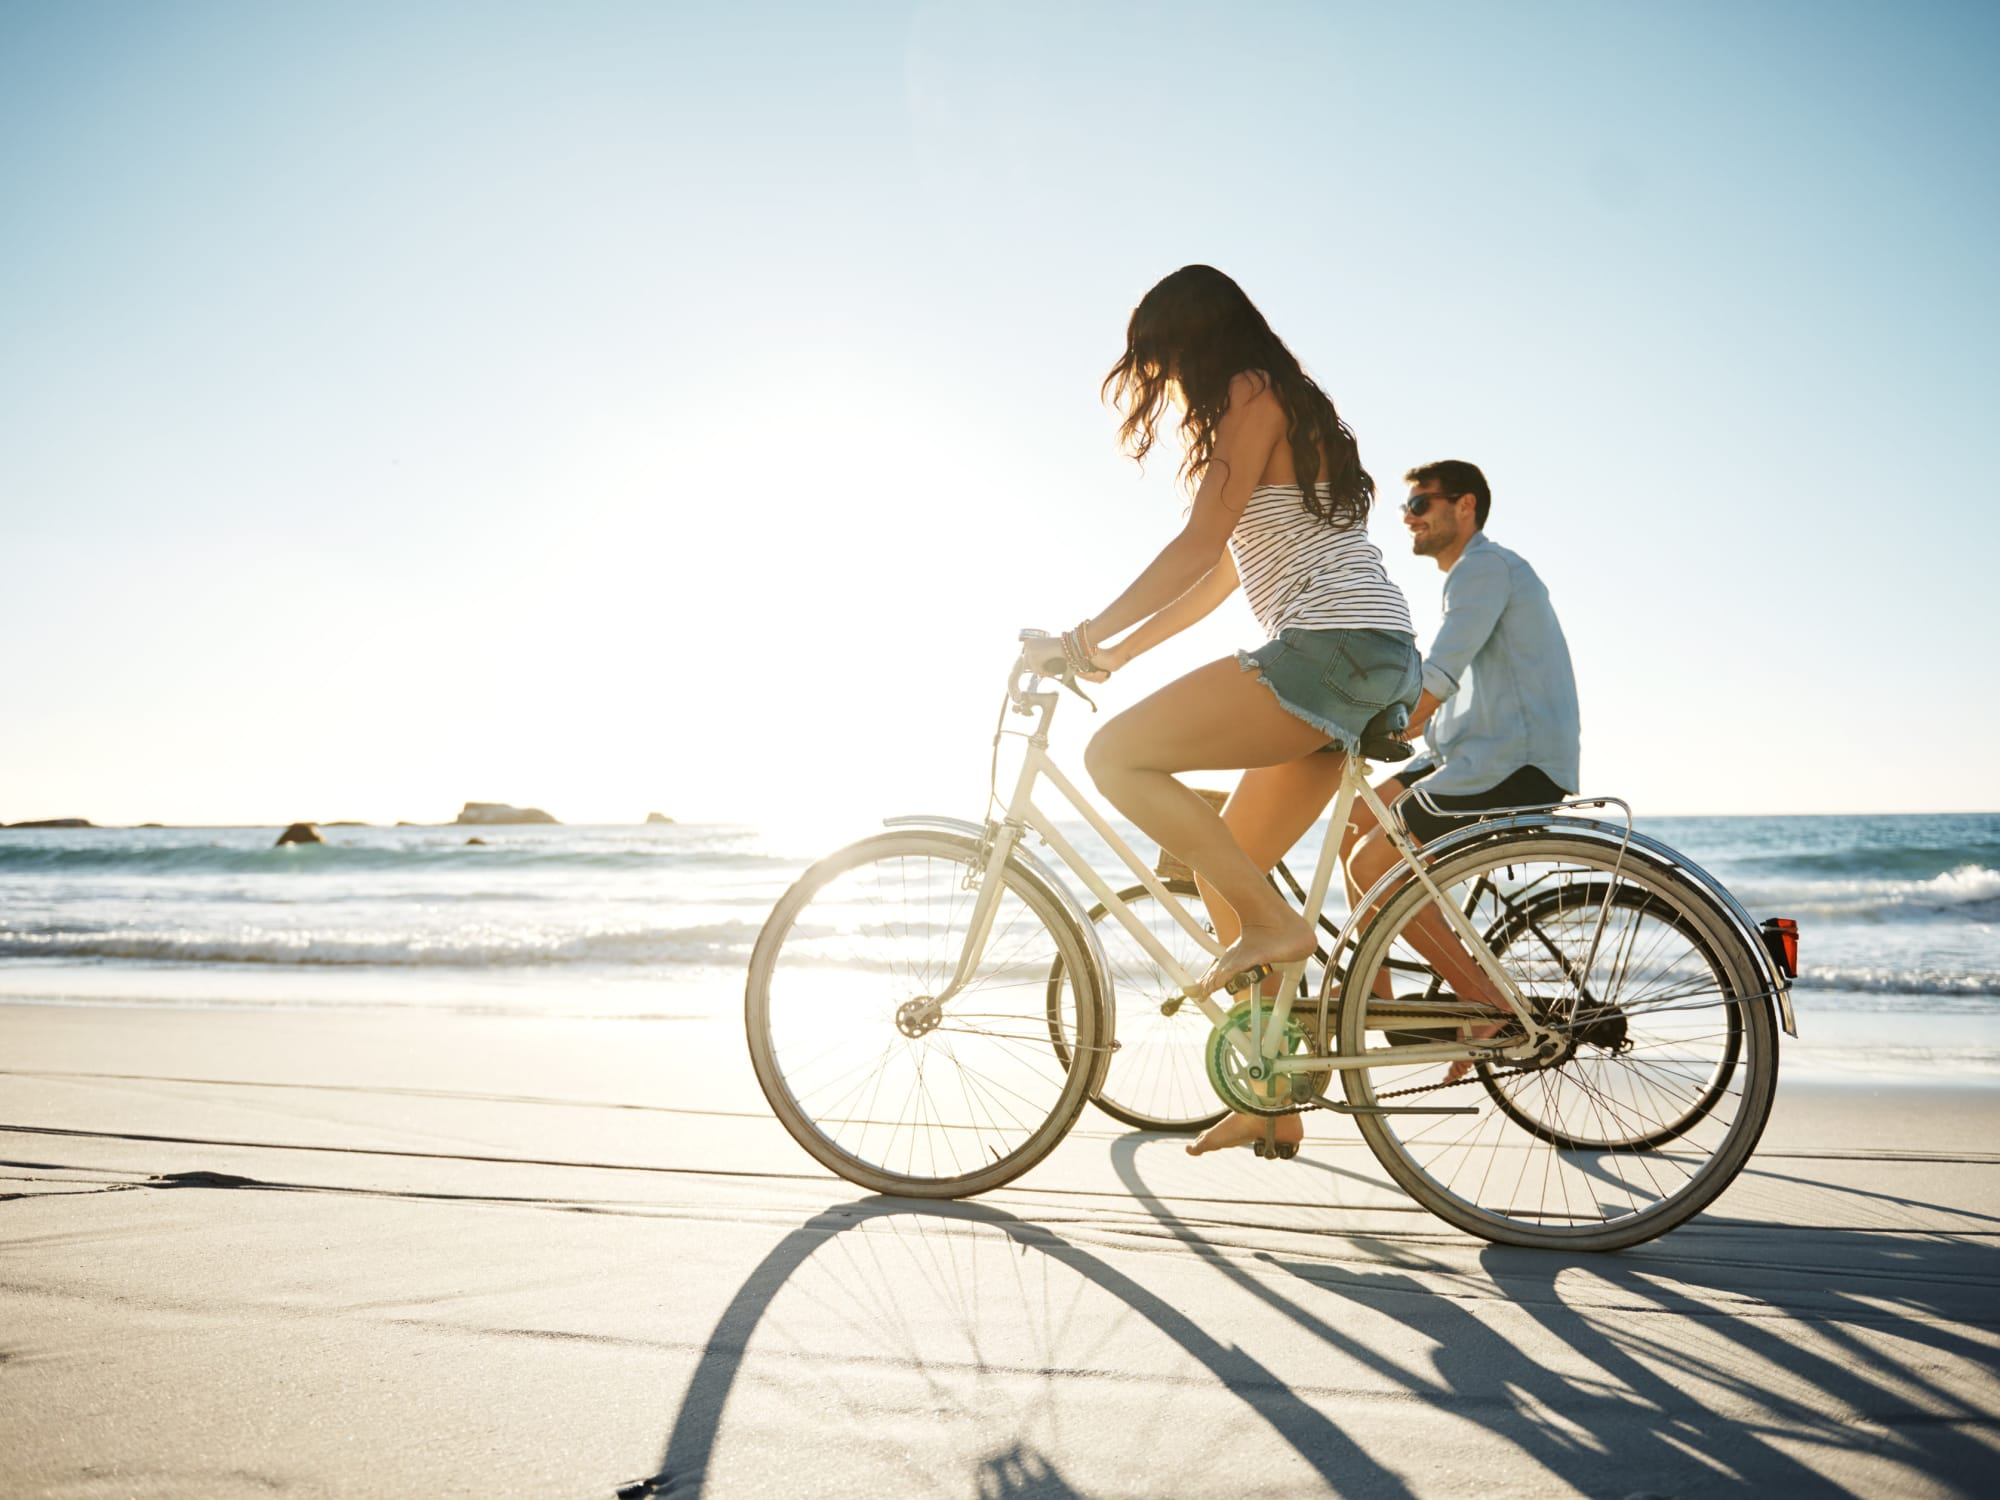 Residents riding bicycles on the beach near The Tides at Marina Harbor in Marina Del Rey, California